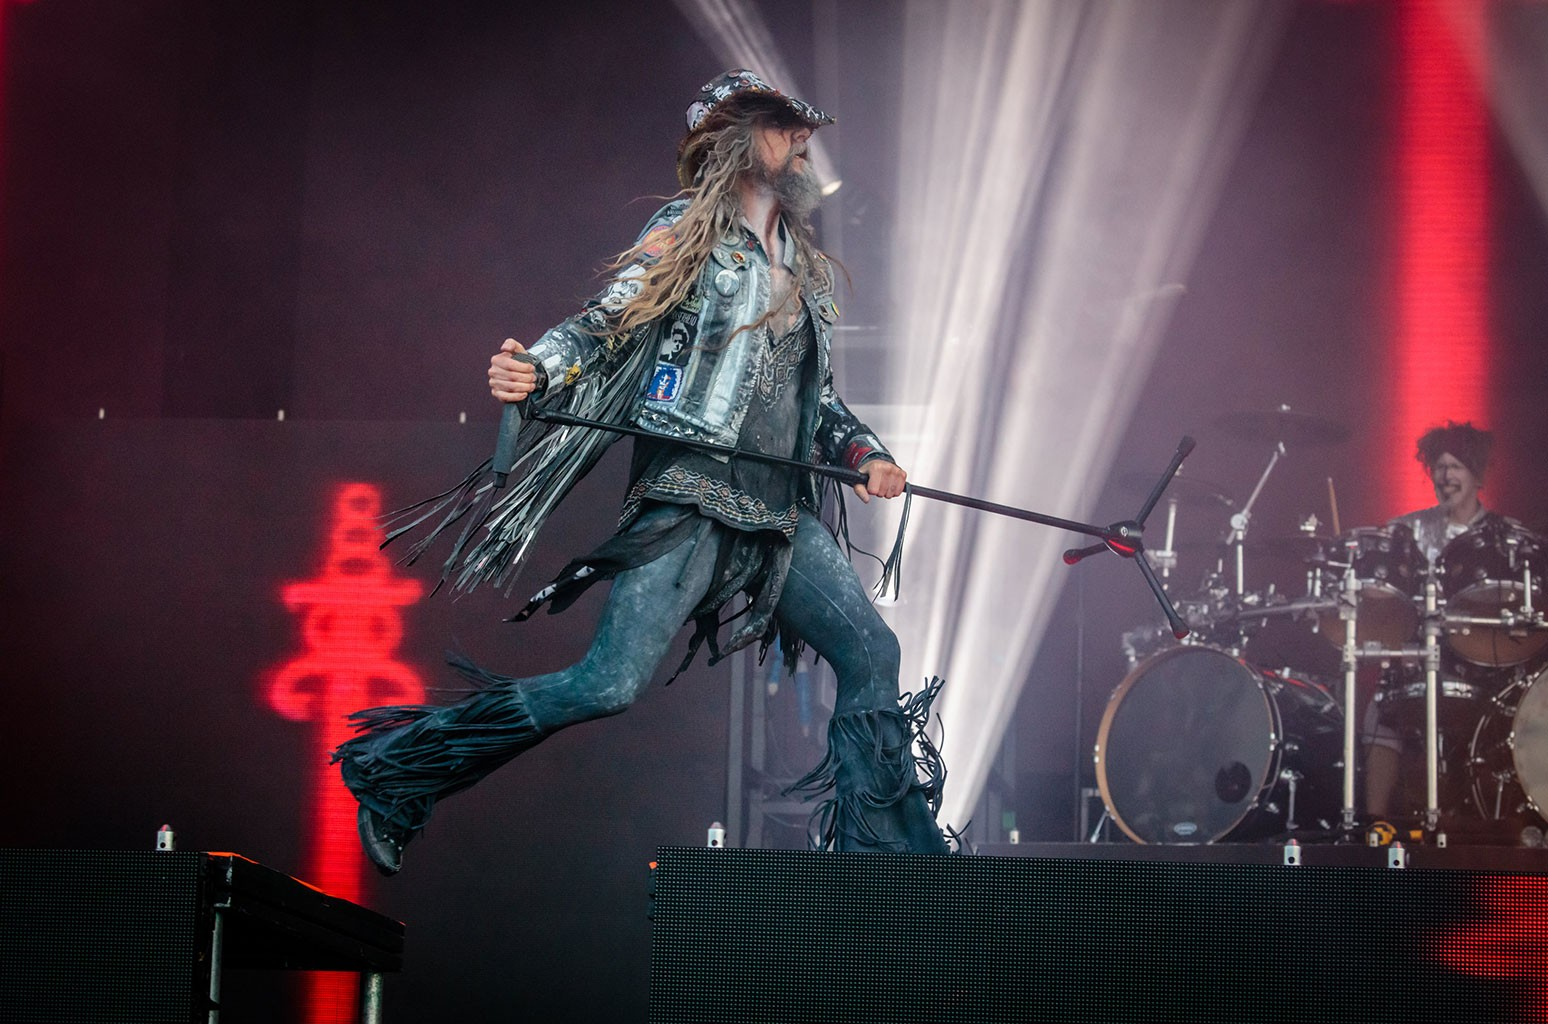 Rob Zombie Scores First No. 1 on Billboard's Top Album Sales Chart With 'Lunar Injection Kool Aid Eclipse Conspiracy'